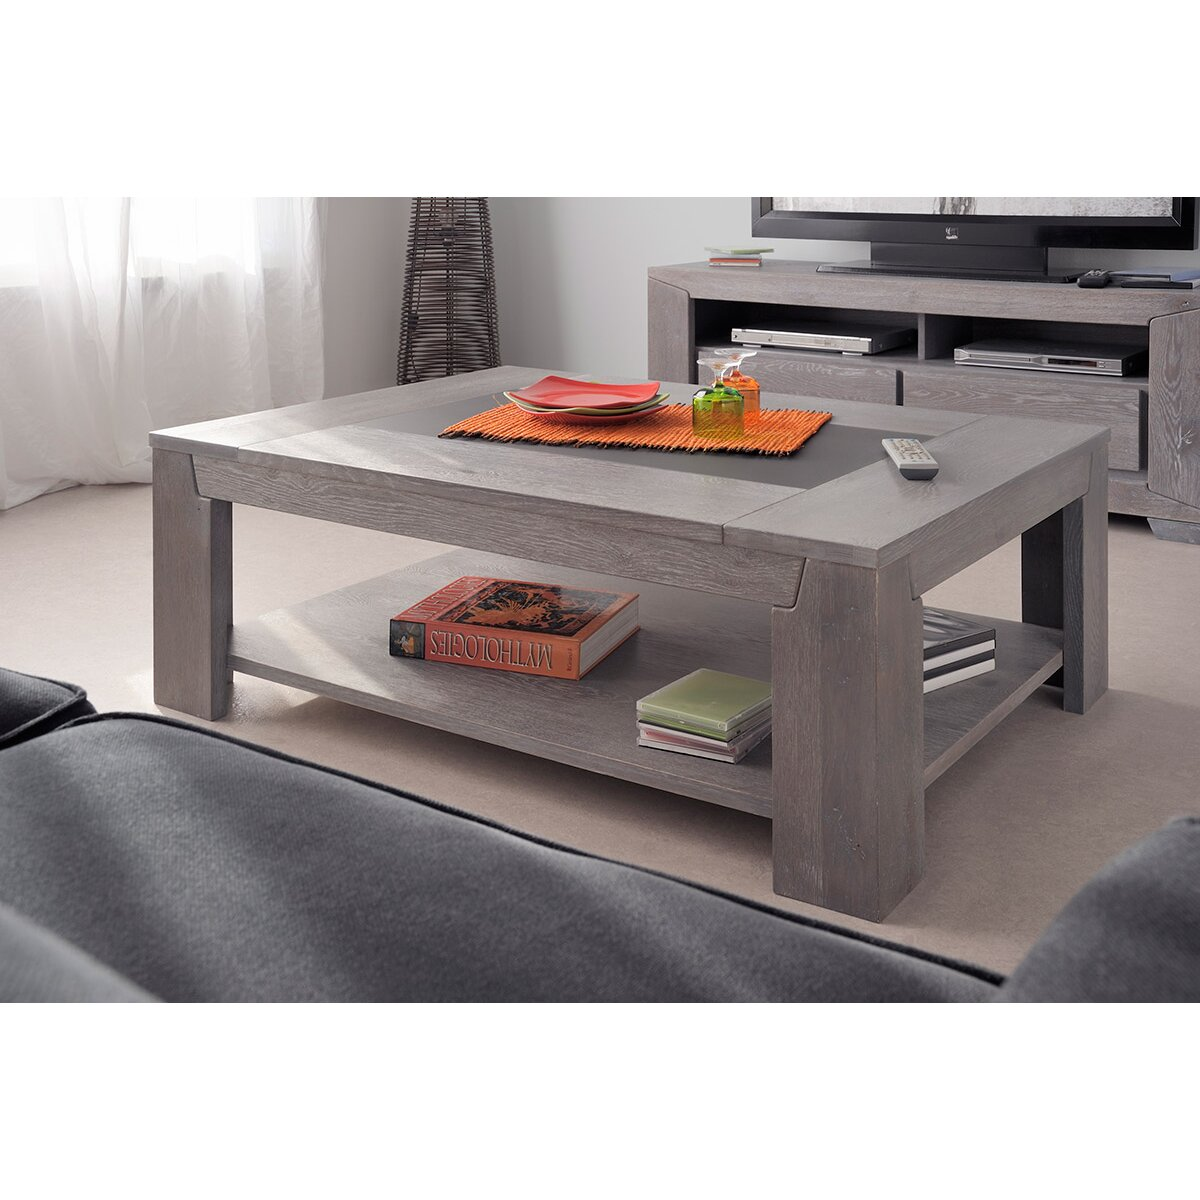 Parisot titan coffee table reviews wayfair - Table basse grise laquee ...